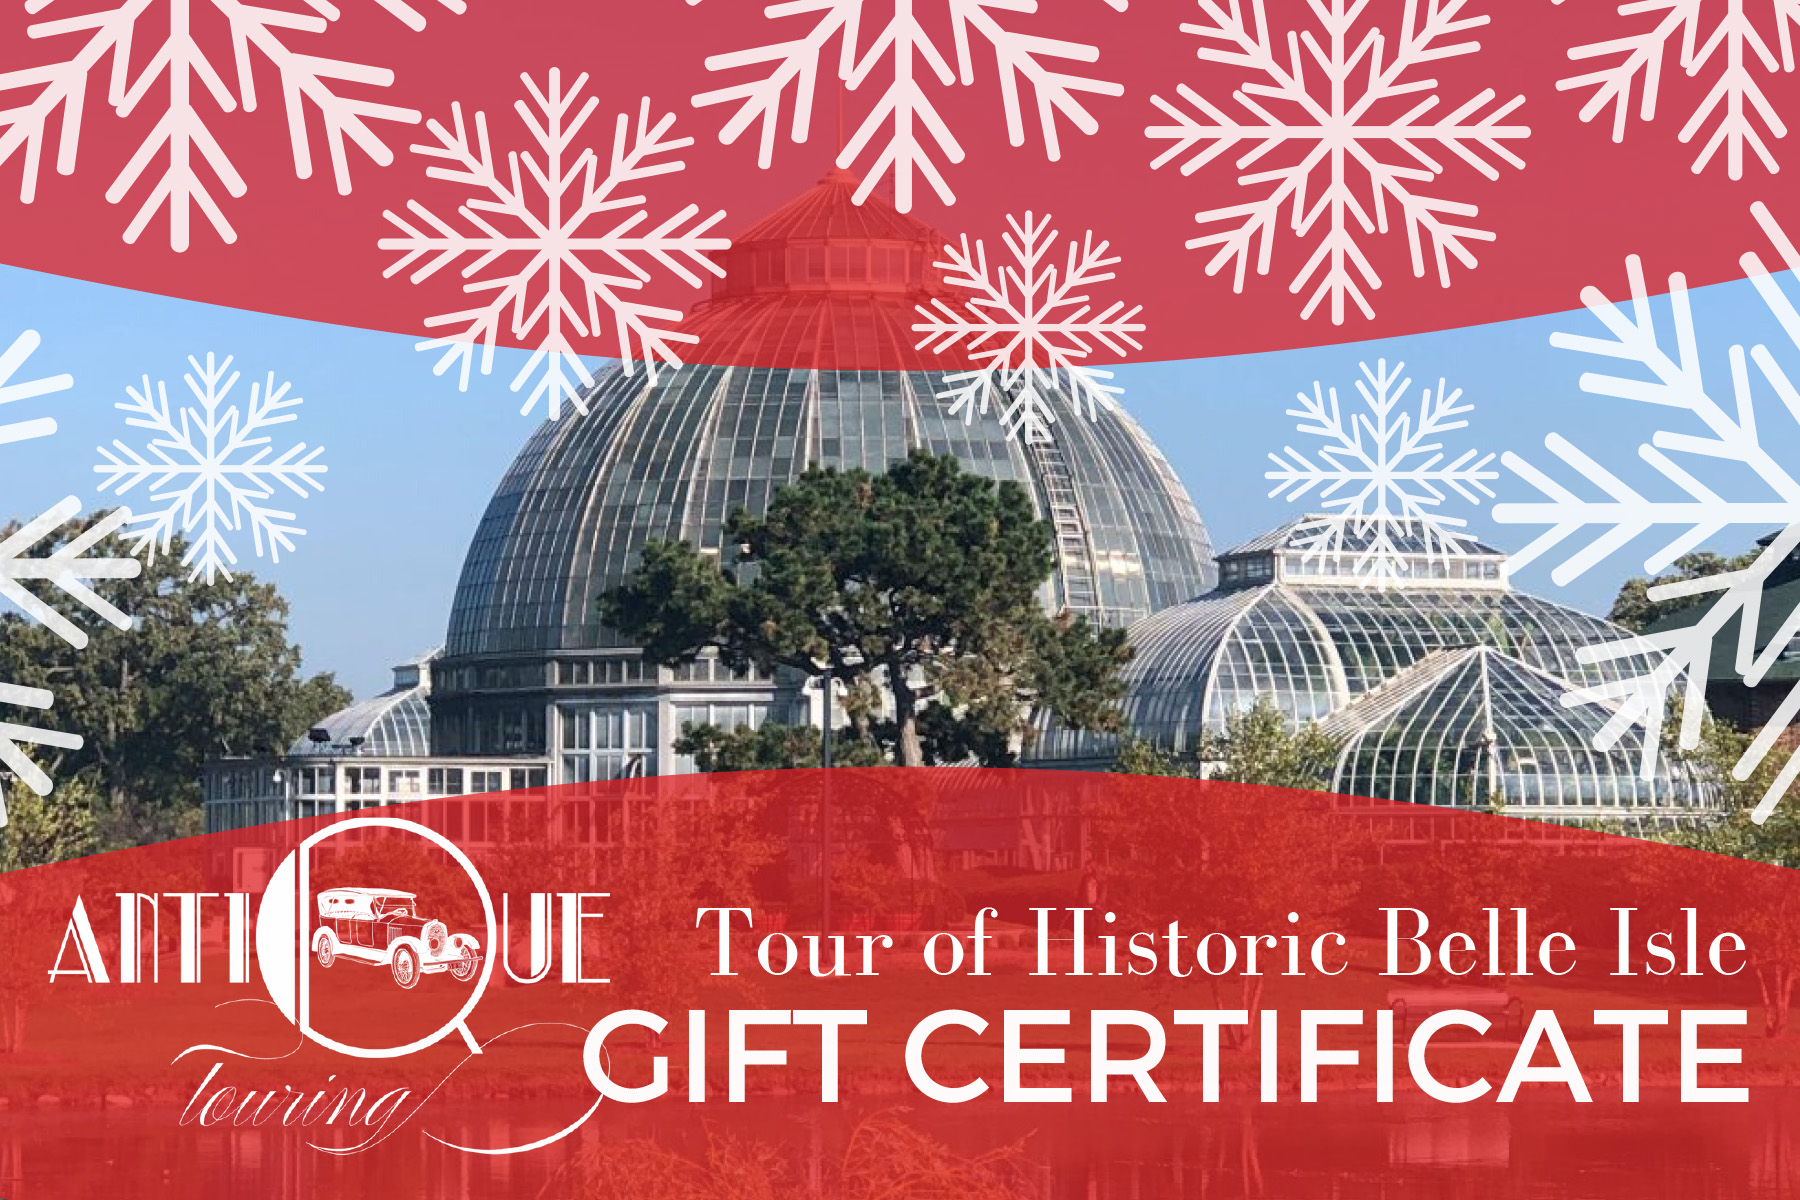 Copy of antique touring bell isle2020gift certificate12.02.19